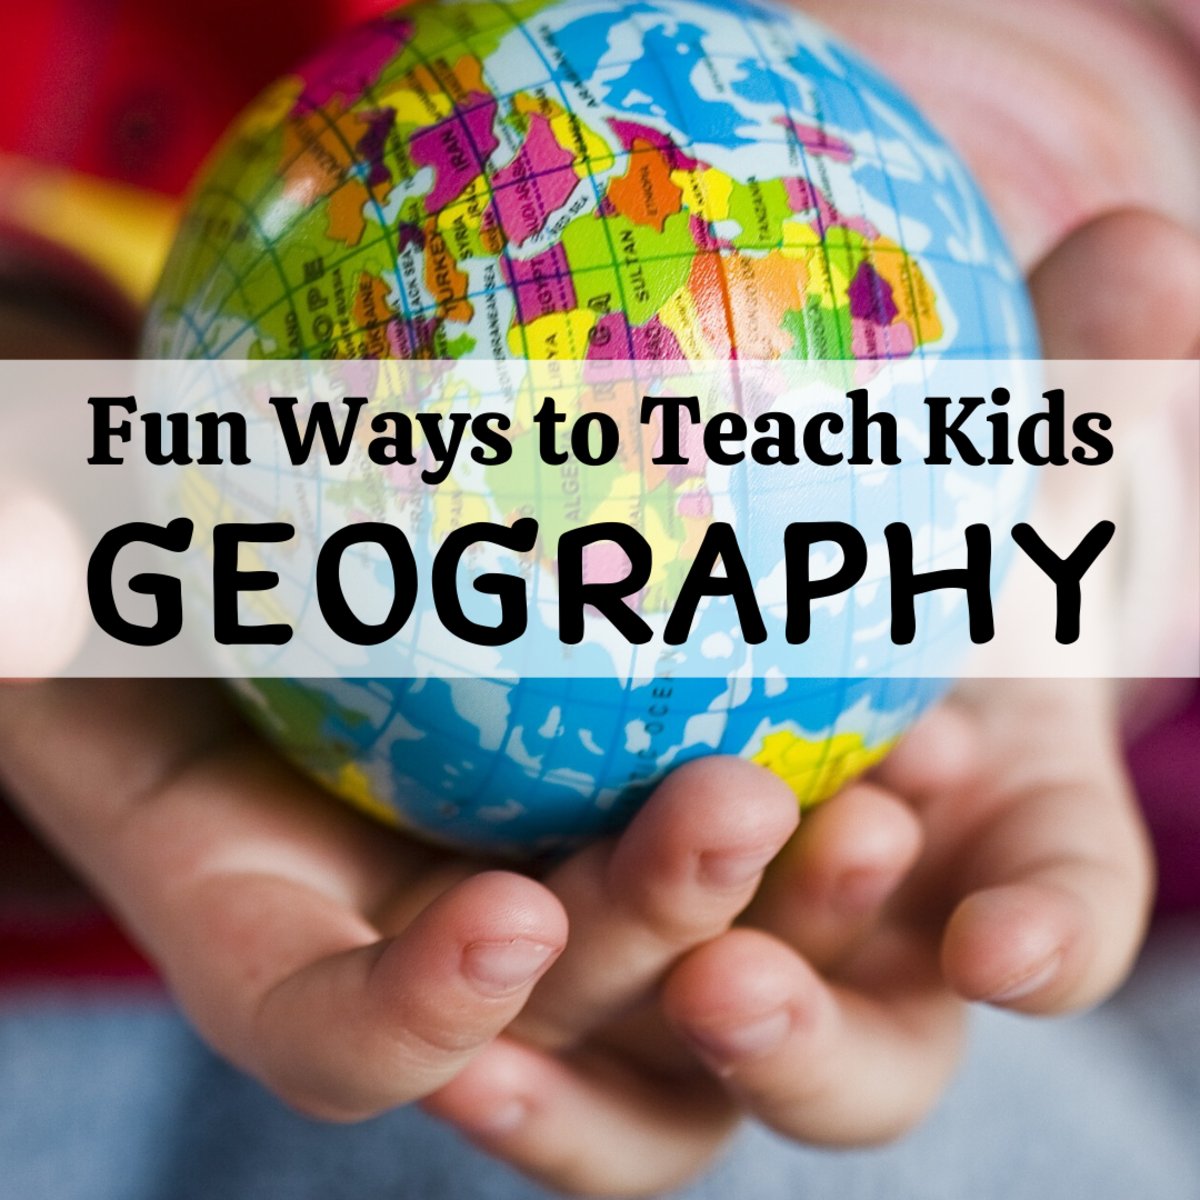 As a parent, you can introduce your children to the important study of geography with fun songs, puzzles, and games that use maps and globes.